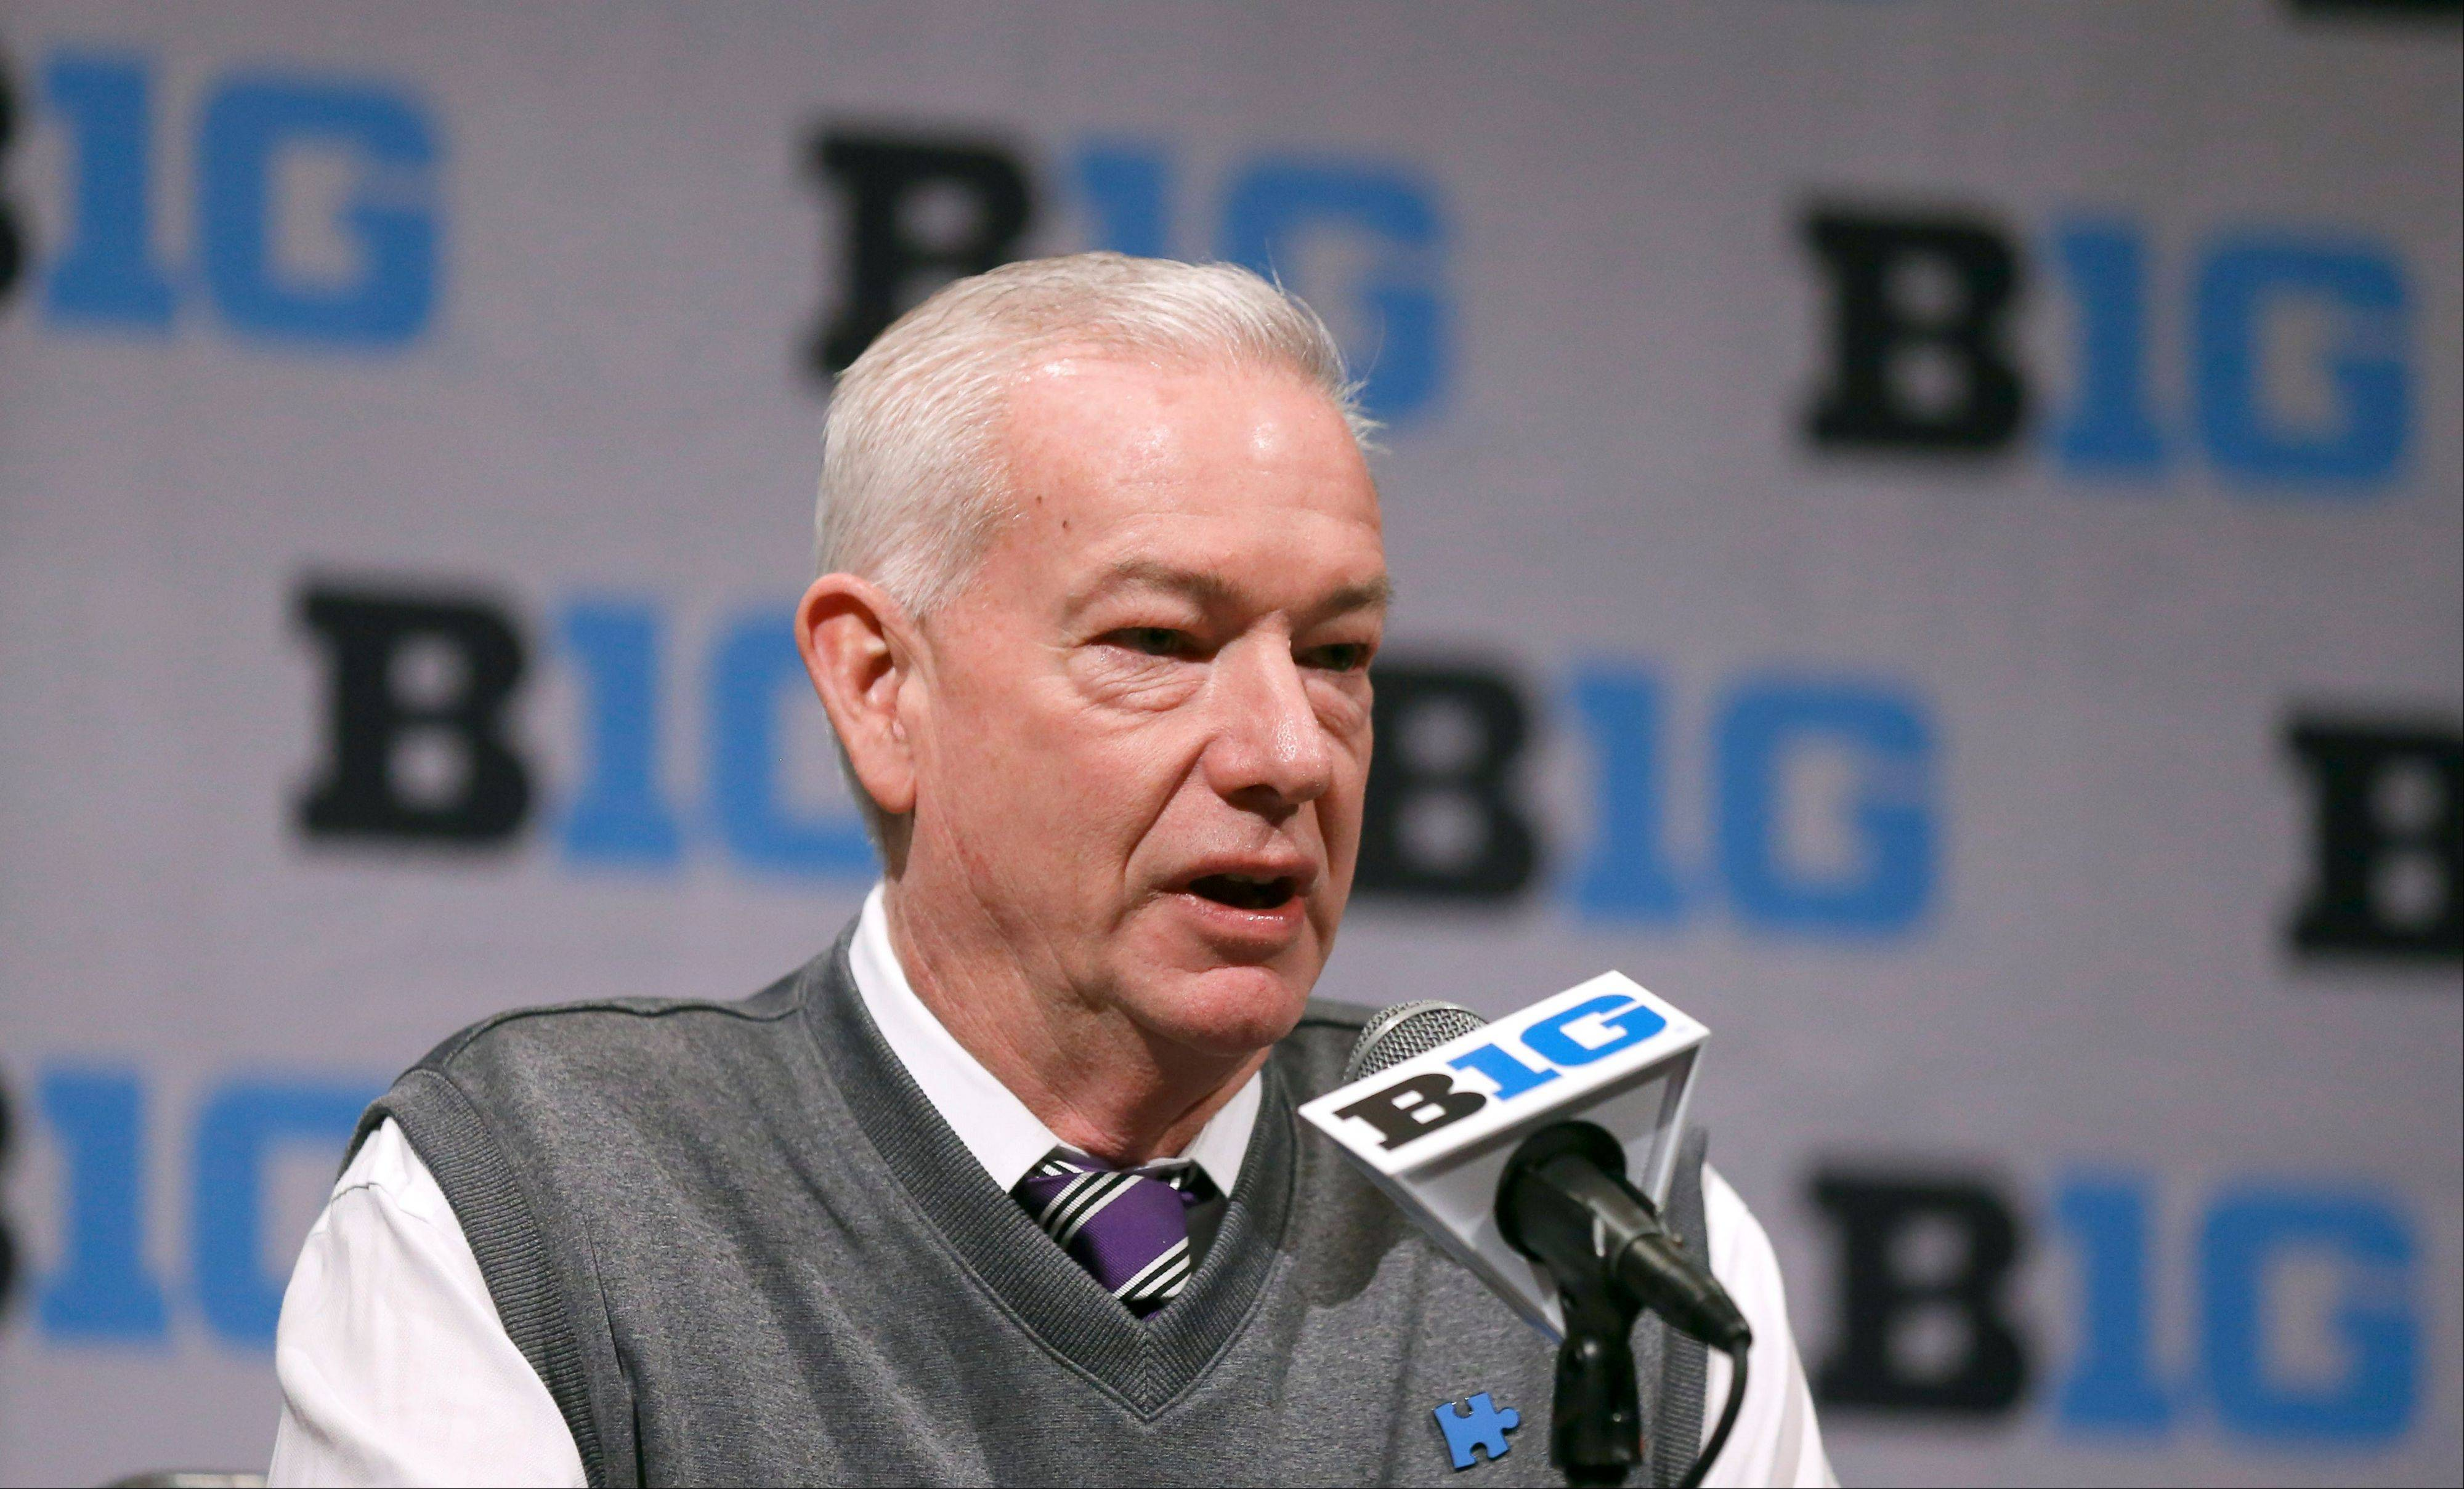 Northwestern women's basketball coach Joe McKeown has done a lot of raise awareness of autism. Every year he raises support at one of Northwestern's basketball games, and this time they'll play DePaul on Dec. 1 to support the Autism Speaks organization.